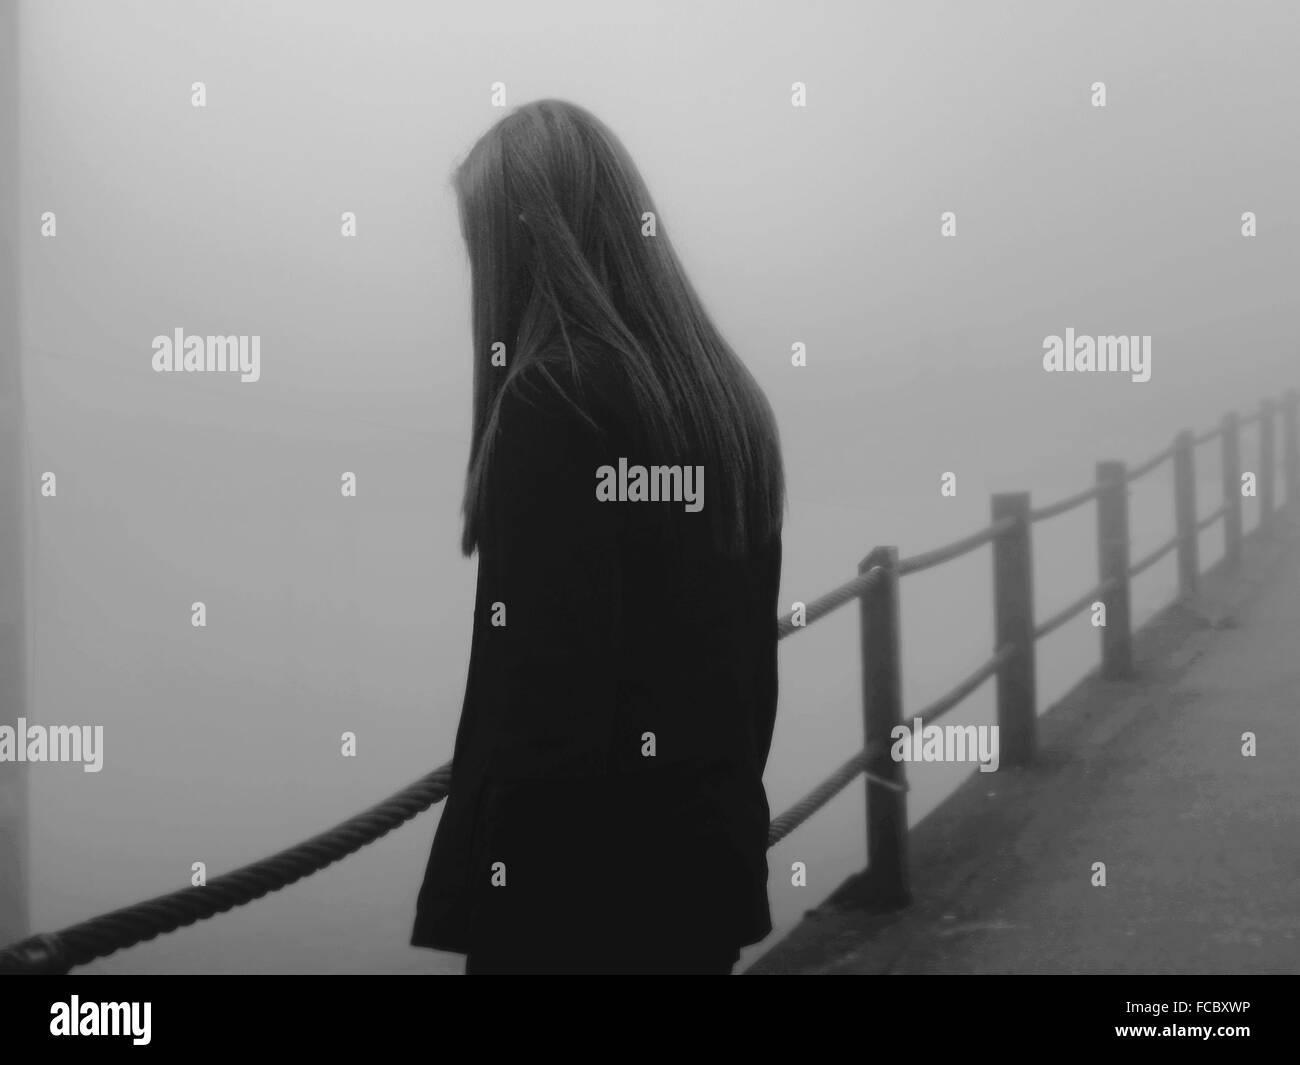 Rear View Of A Woman Looking Towards Clear Background - Stock Image